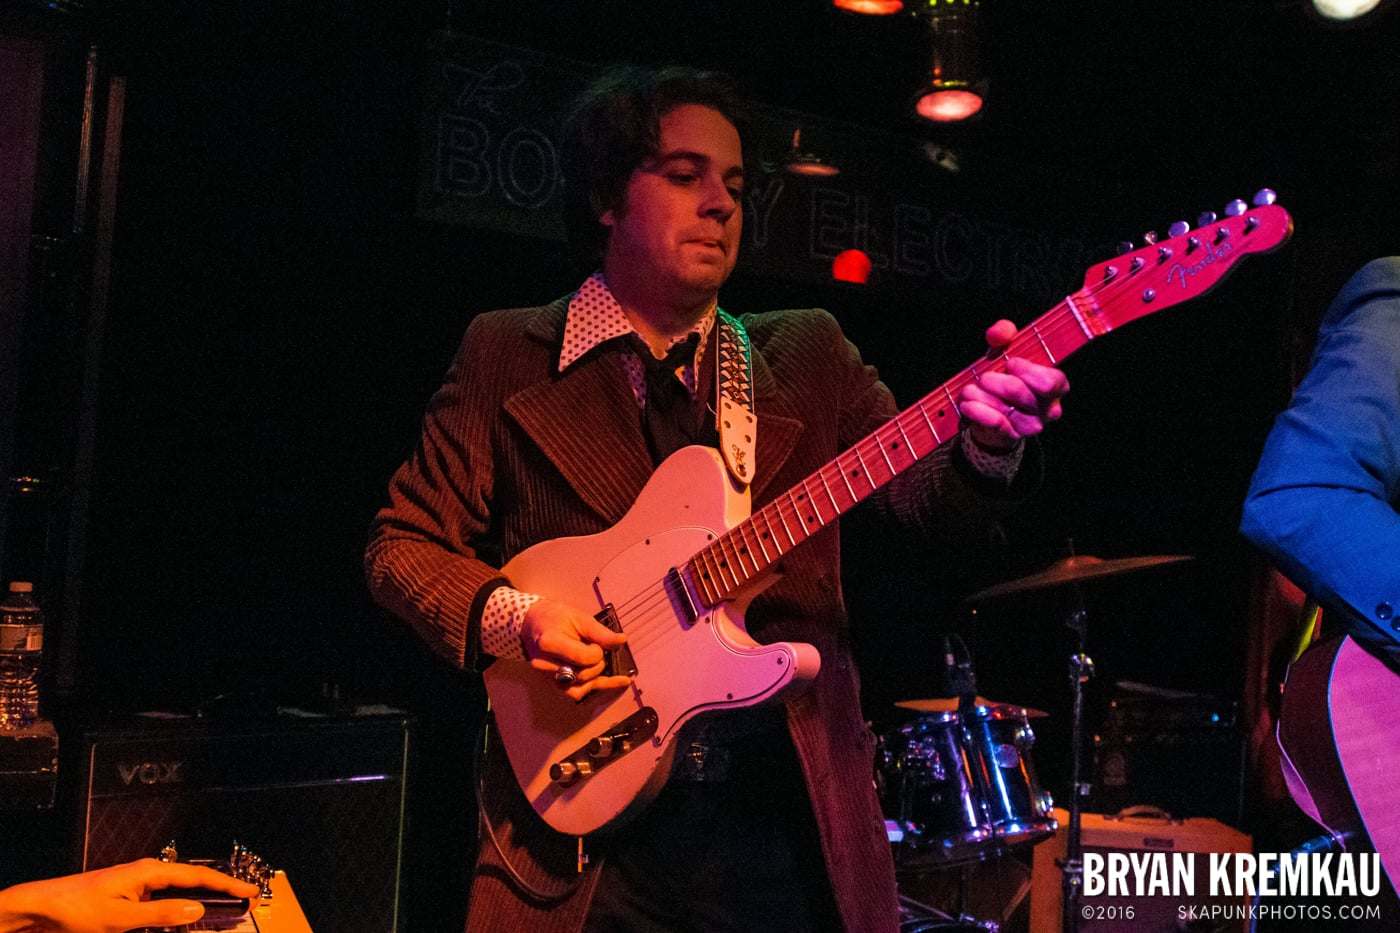 Trapper Schoepp & The Shades @ Bowery Electric, NYC - 11.20.14 (46)